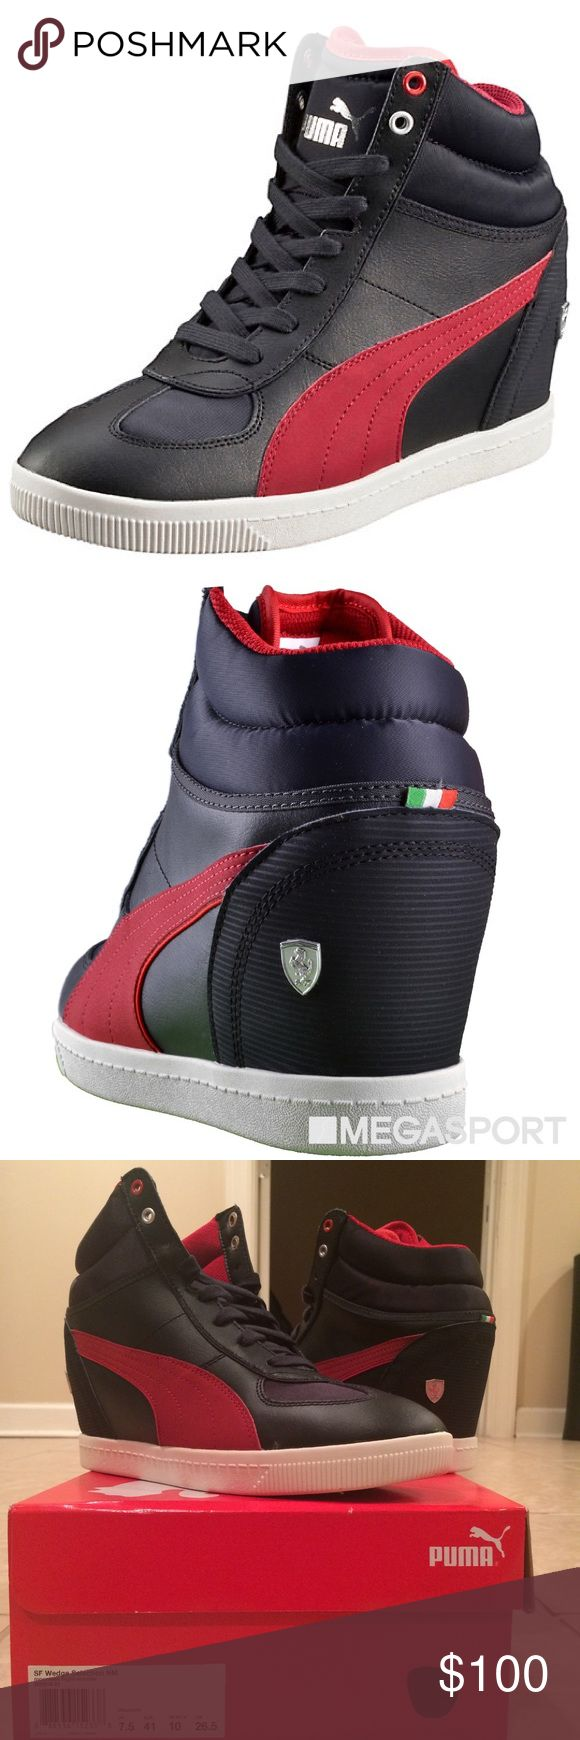 Puma Ferrari Hidden Wedge Sneaker SF Wedge Selection NM Designed with the race track in mind. This Ferrari wedge sneaker features a sleek, synthetic leather upper, classic Ferrari detailing, and – of course – a hidden wedge. A girl's secret weapon of style and sport-savviness. Features. Synthetic leather upper. padded collar. Lace closure for a secure fit. Rubber outsole for grip. PUMA Formstrip at lateral side; Italian flag stitched at heel; metallic Ferrari Shield Logo at lateral heel…